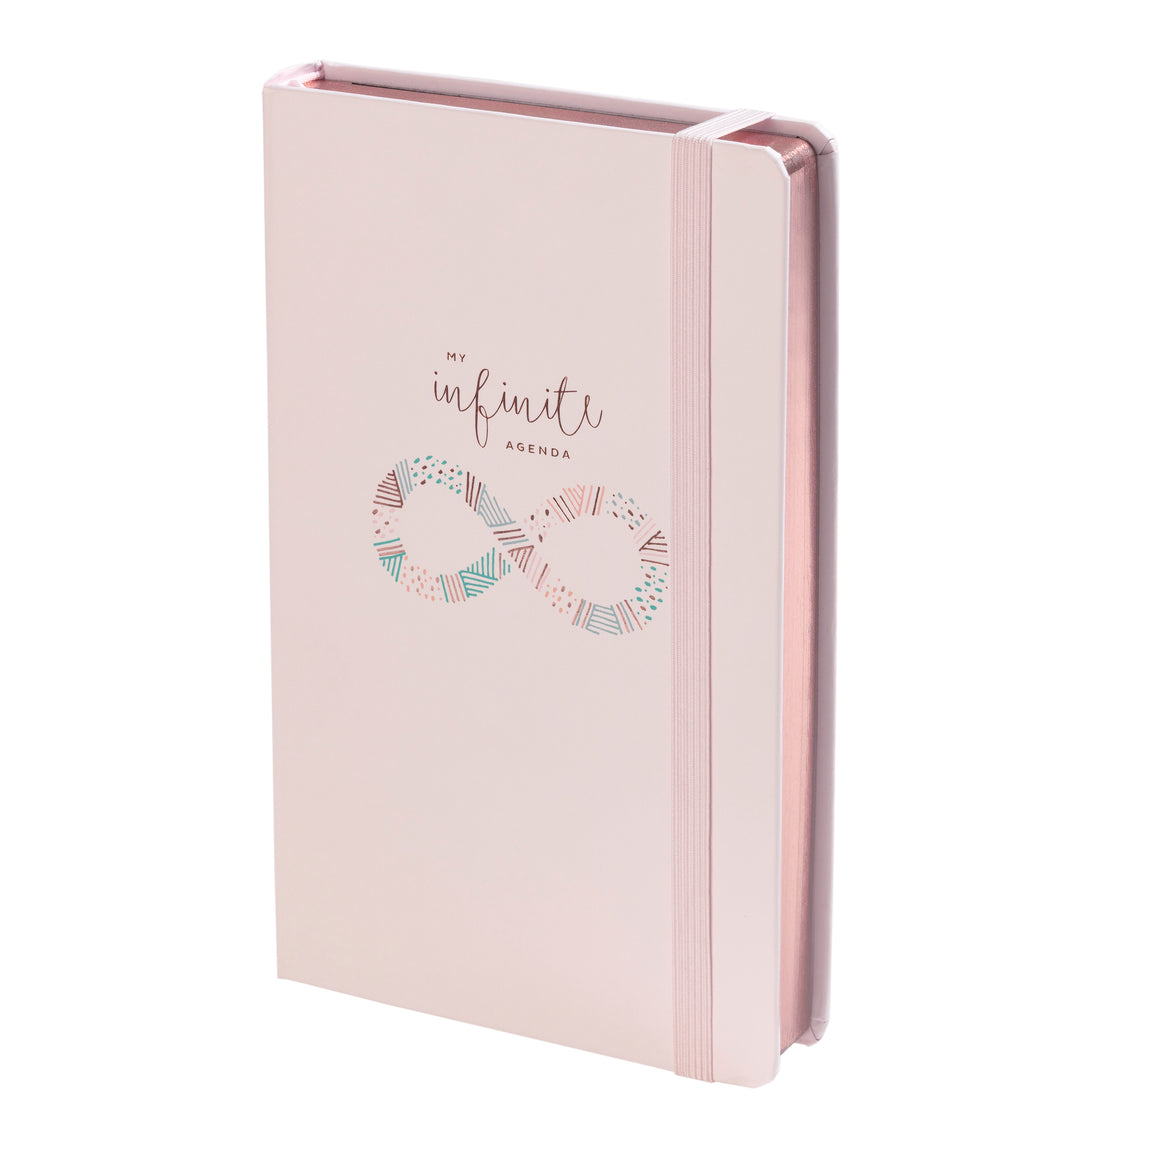 "Undated - My Infinite Agenda - Blush with Rose Gold (180 Days) - 5"" x 8.25"", $29"